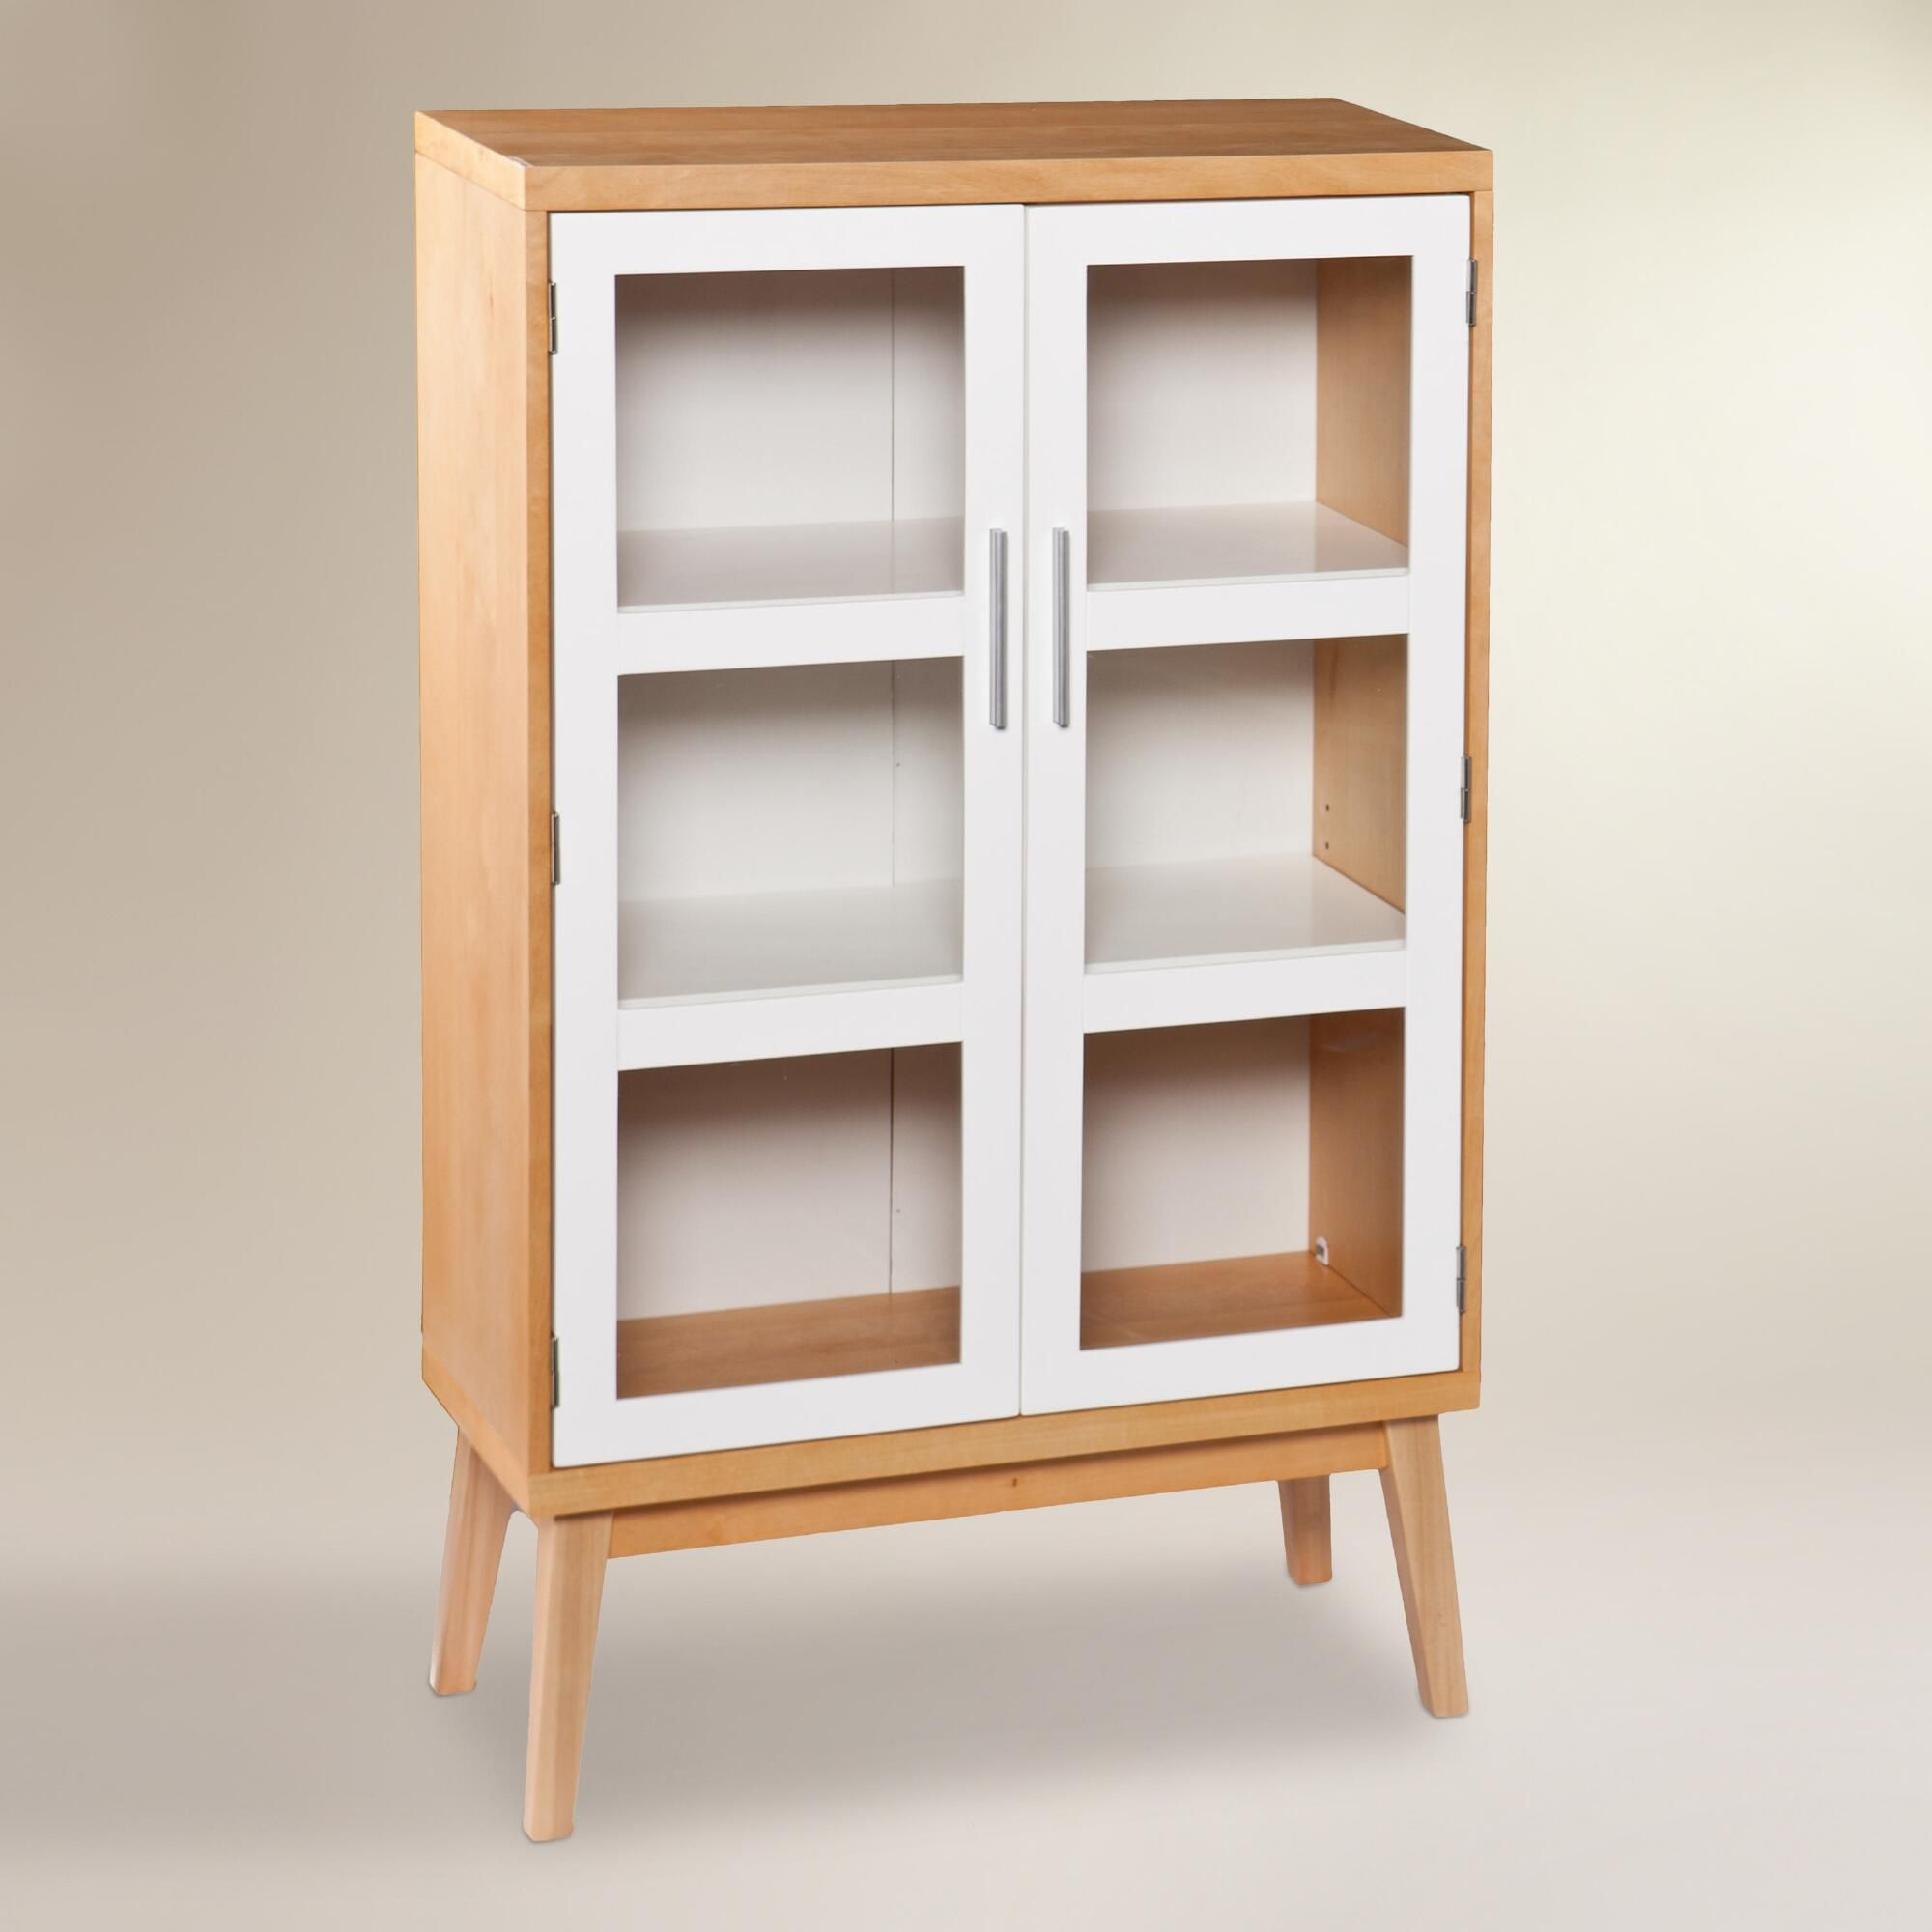 Our two-door cabinet boasts a style that evokes Scandinavian design ...